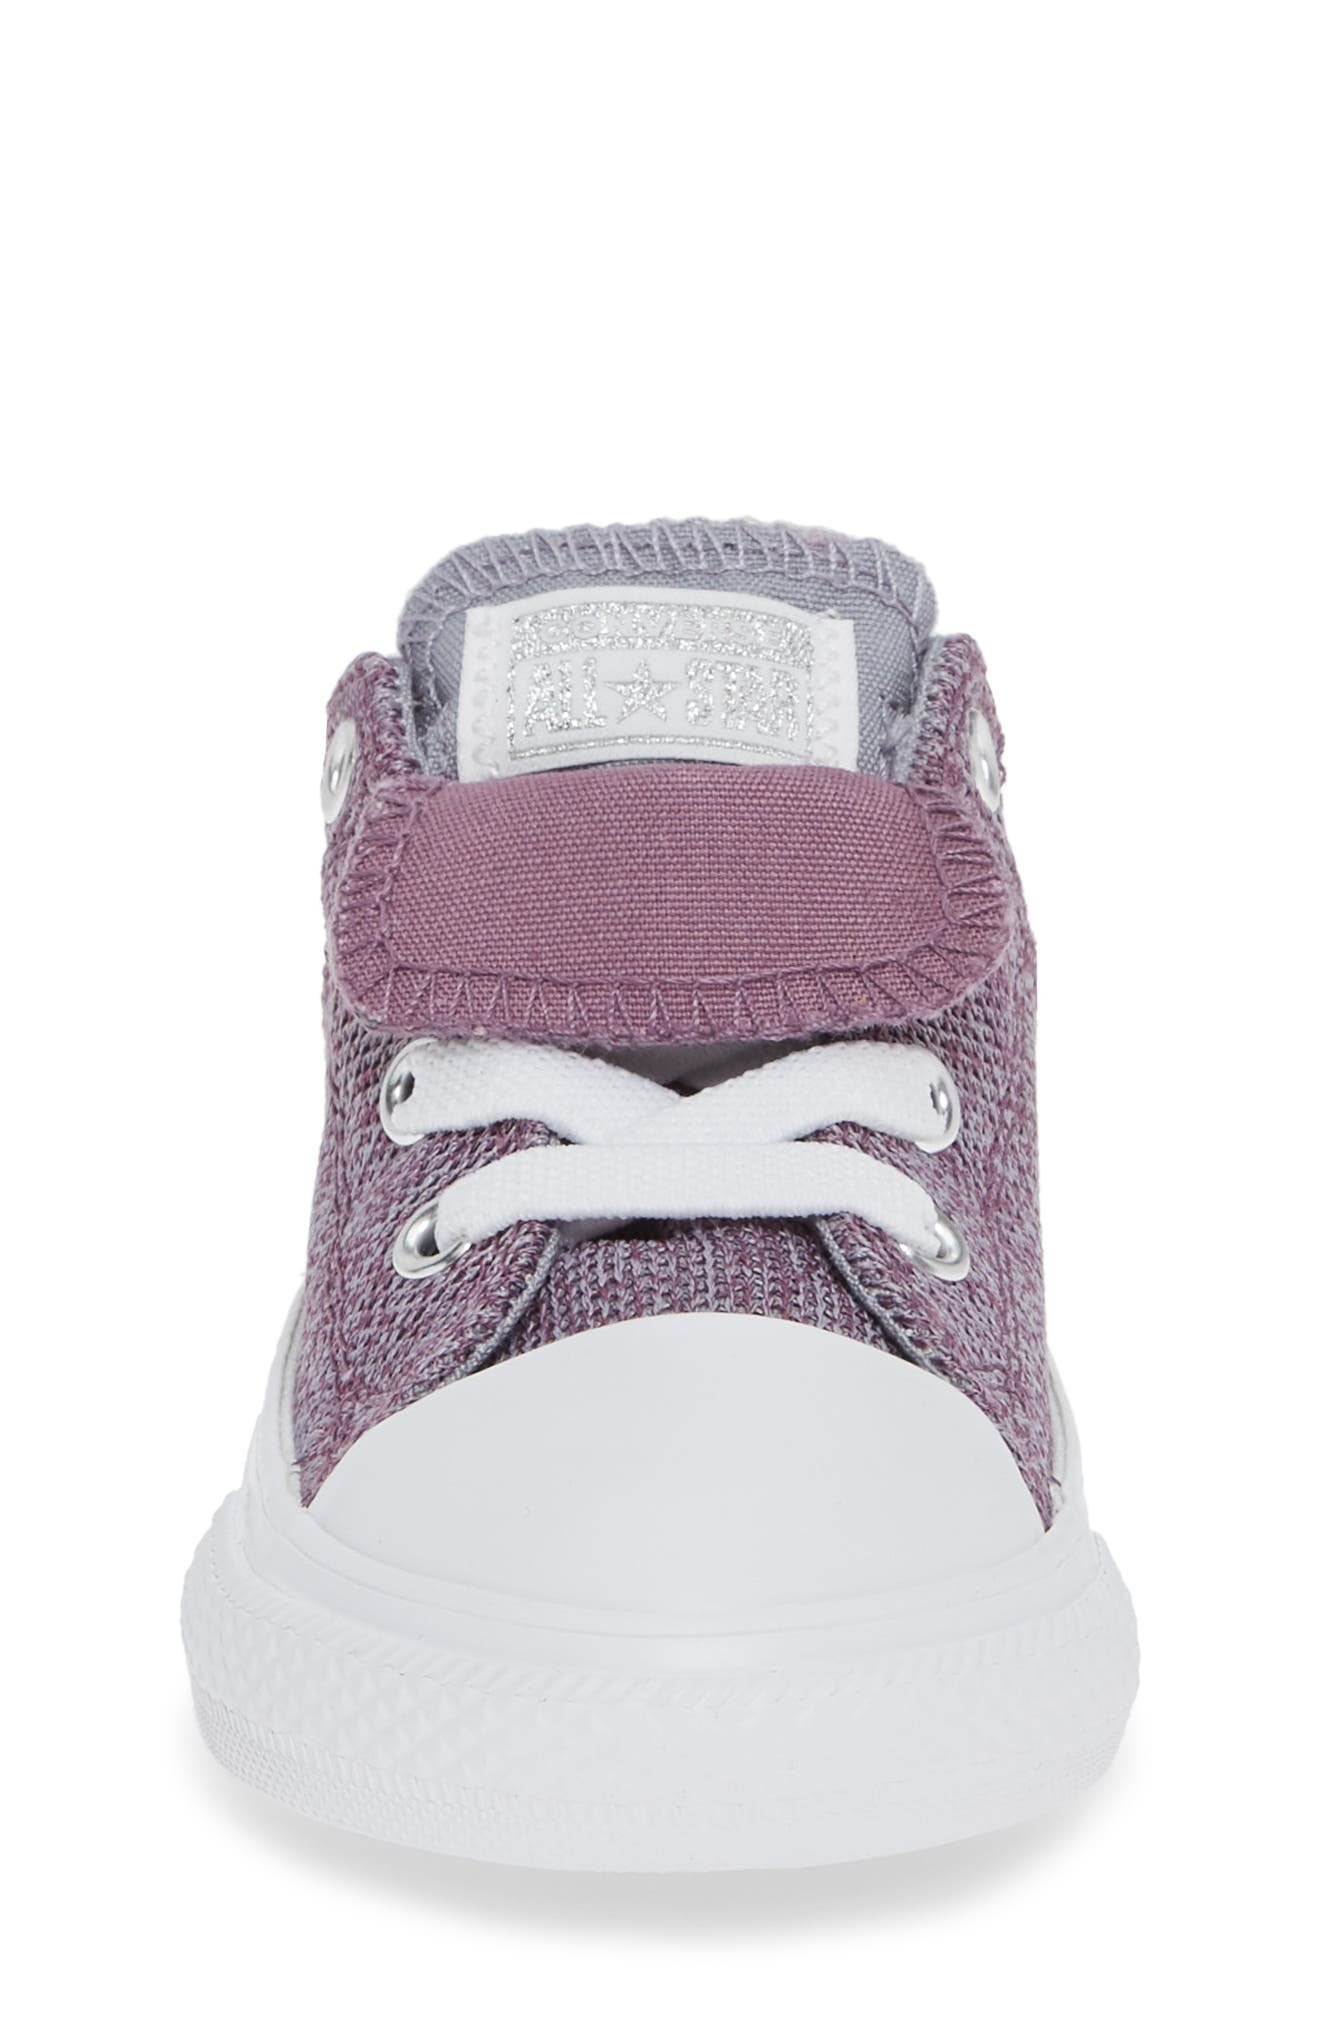 ,                             Chuck Taylor<sup>®</sup> All Star<sup>®</sup> Maddie Double Tongue Sneaker,                             Alternate thumbnail 46, color,                             501